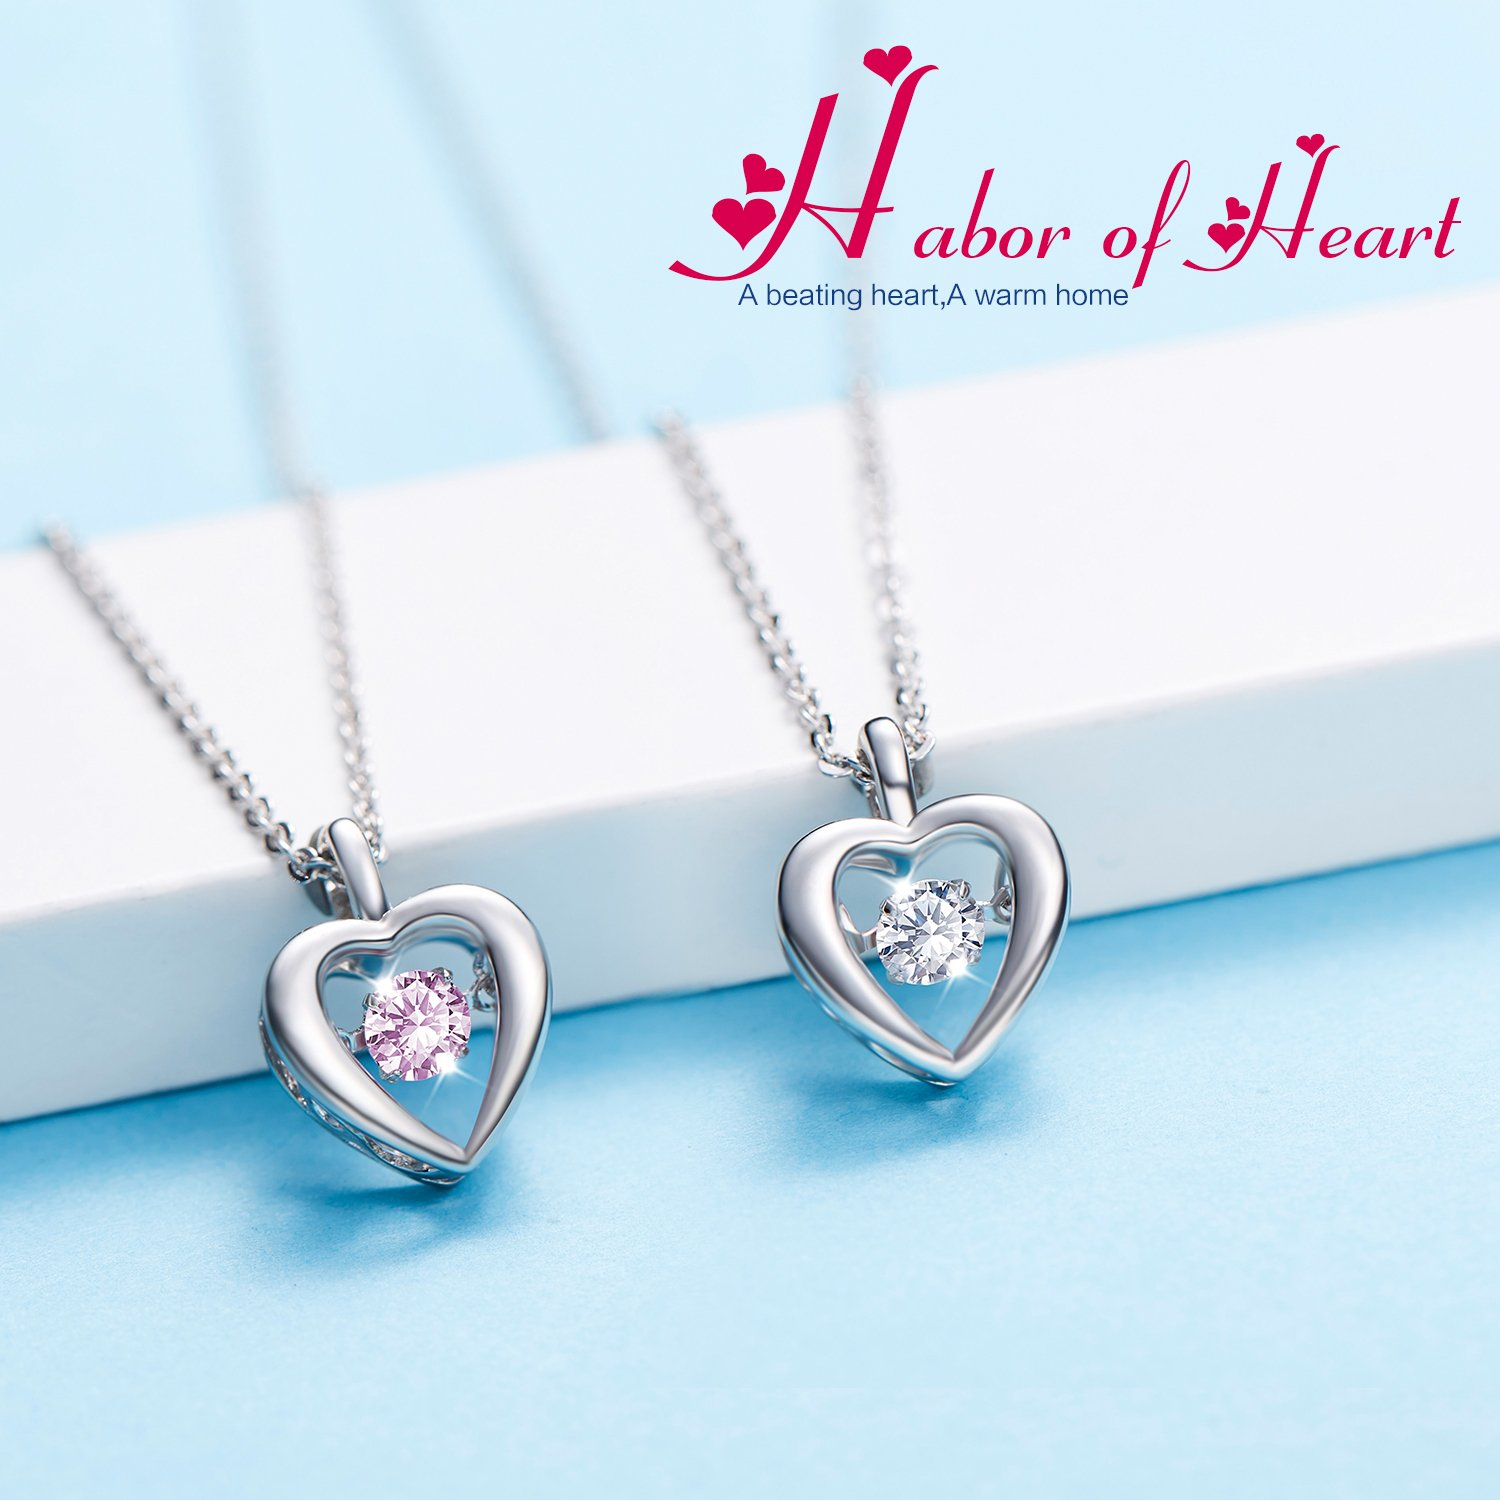 D.B.MOOD Womens Love Heart Pendant Necklace Zircon Mosaic 18k White Gold Plated Valentines Day Gift Necklace